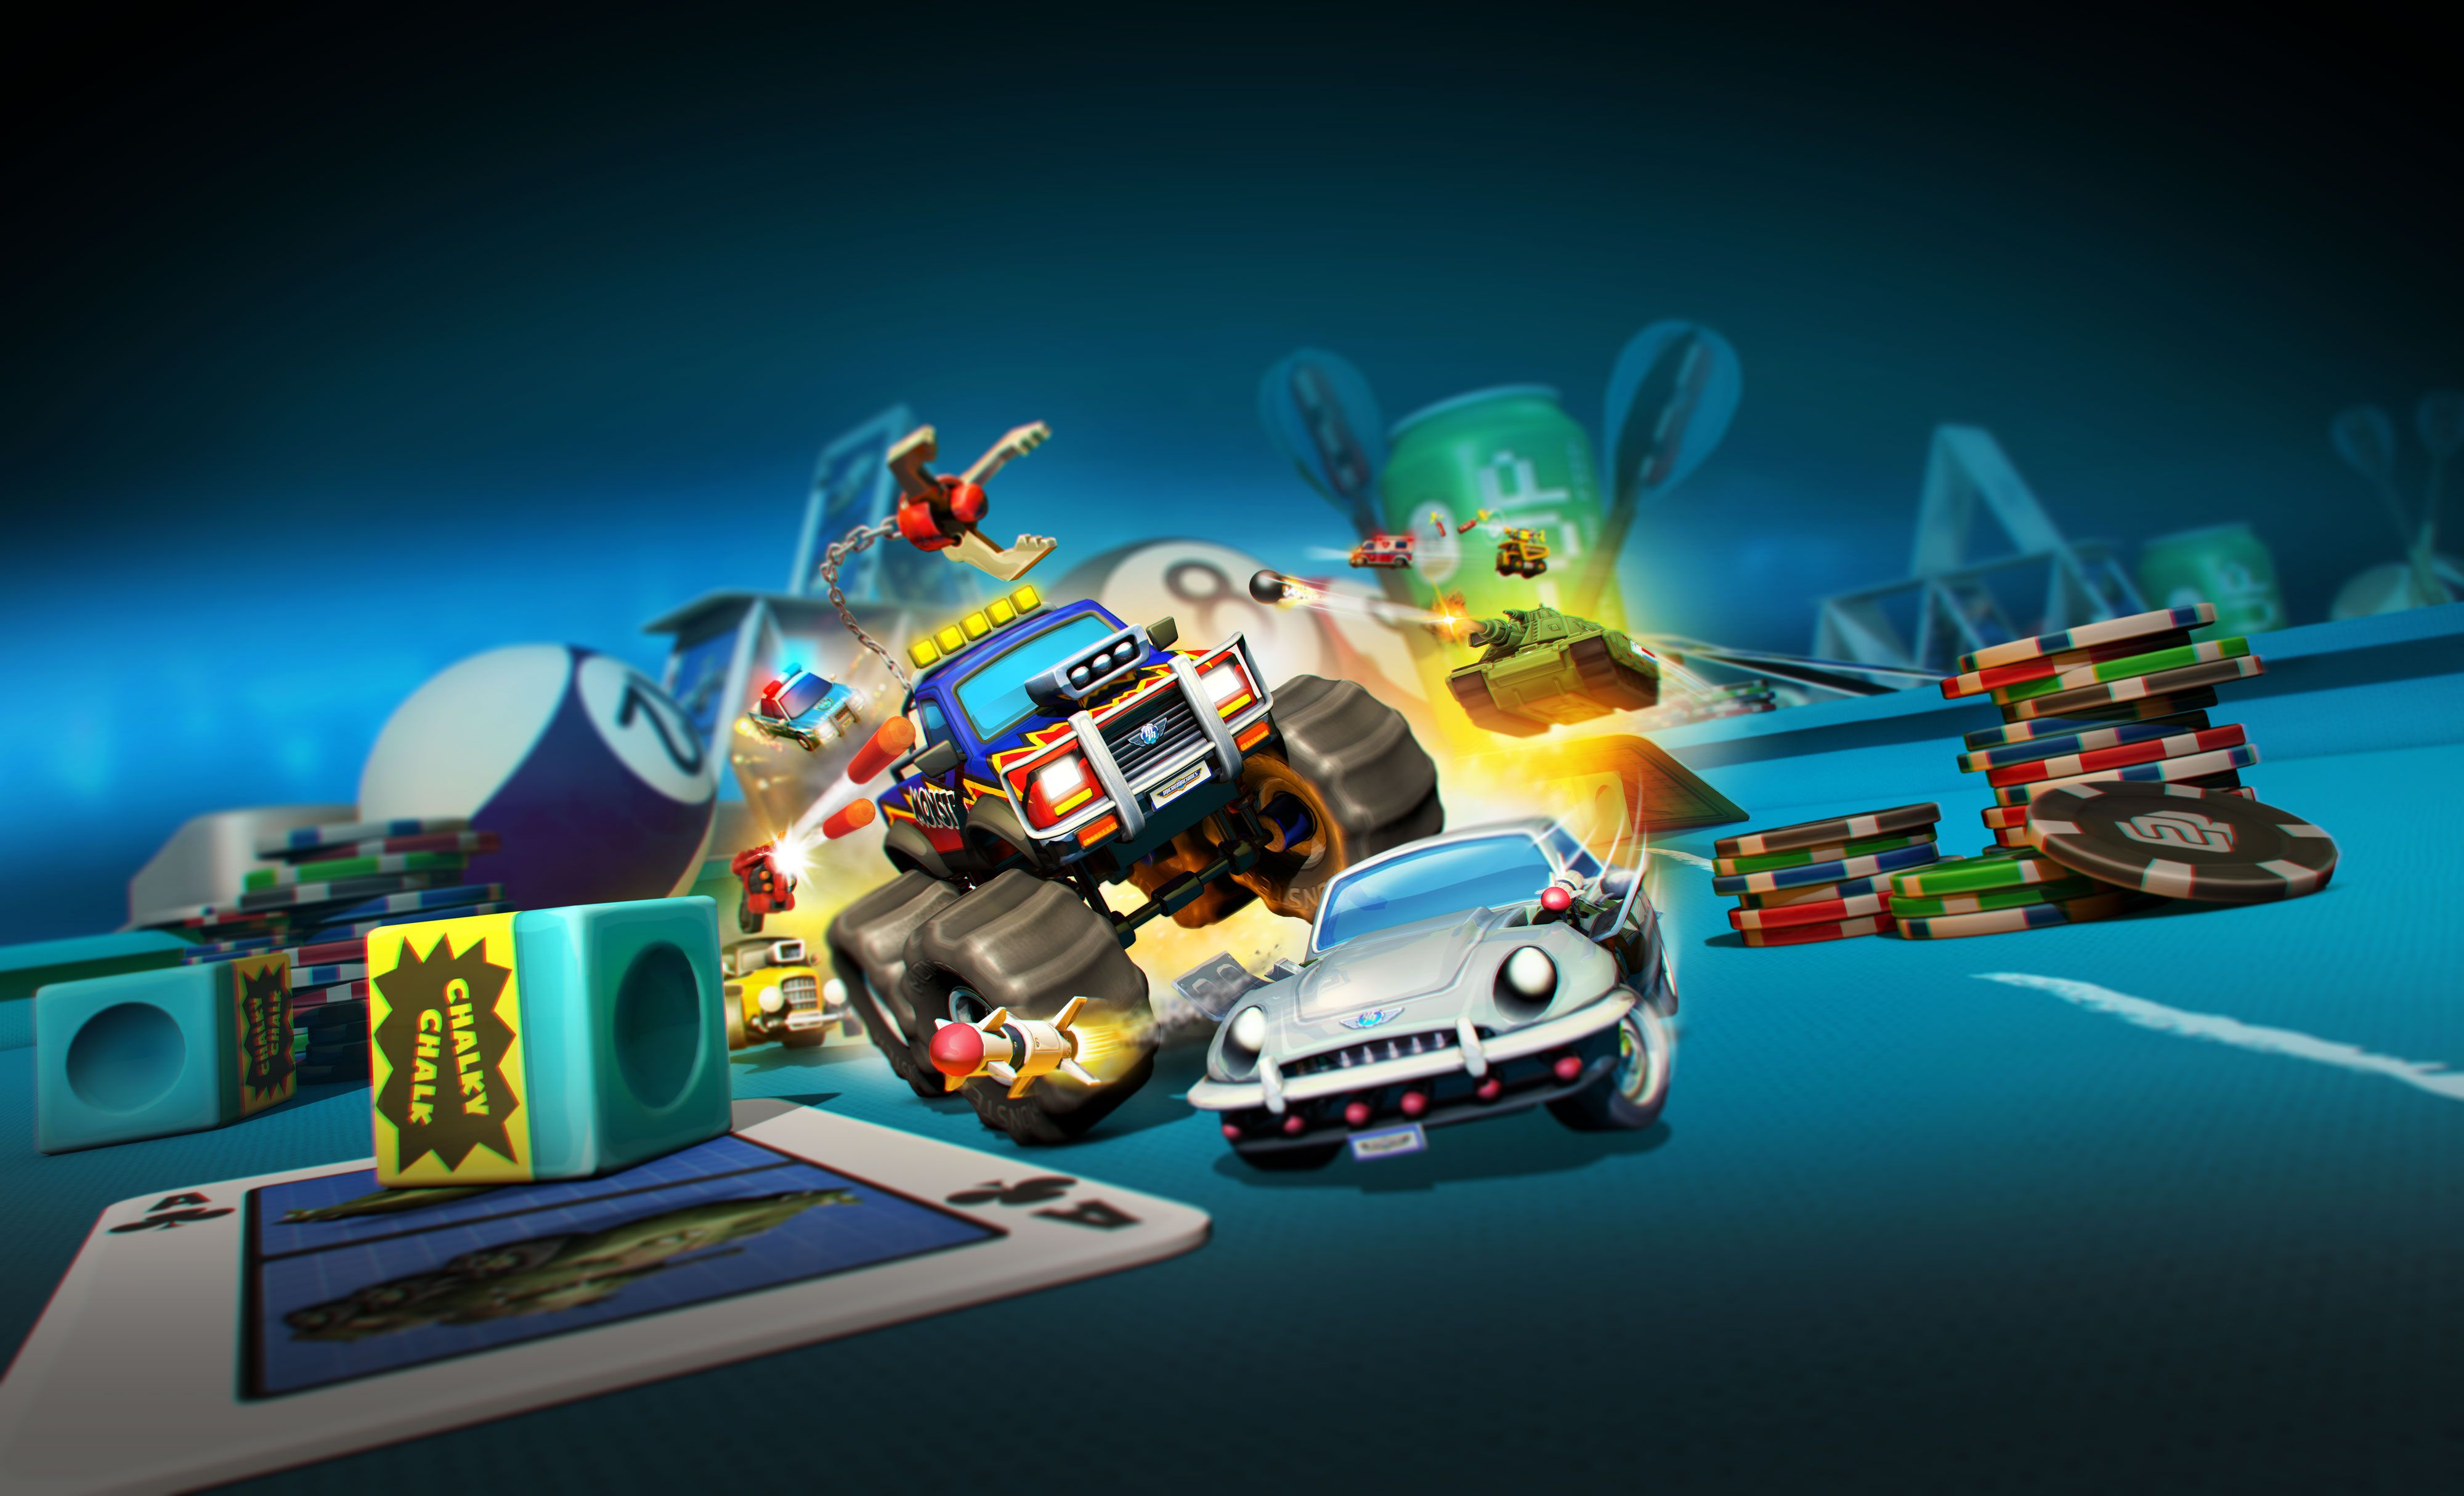 Codemasters Have Announced Micro Machines World Series For Ps4 Sony Lego And Xb1 Windows Playstation4 Videogames Playstation Gamer Games Gaming